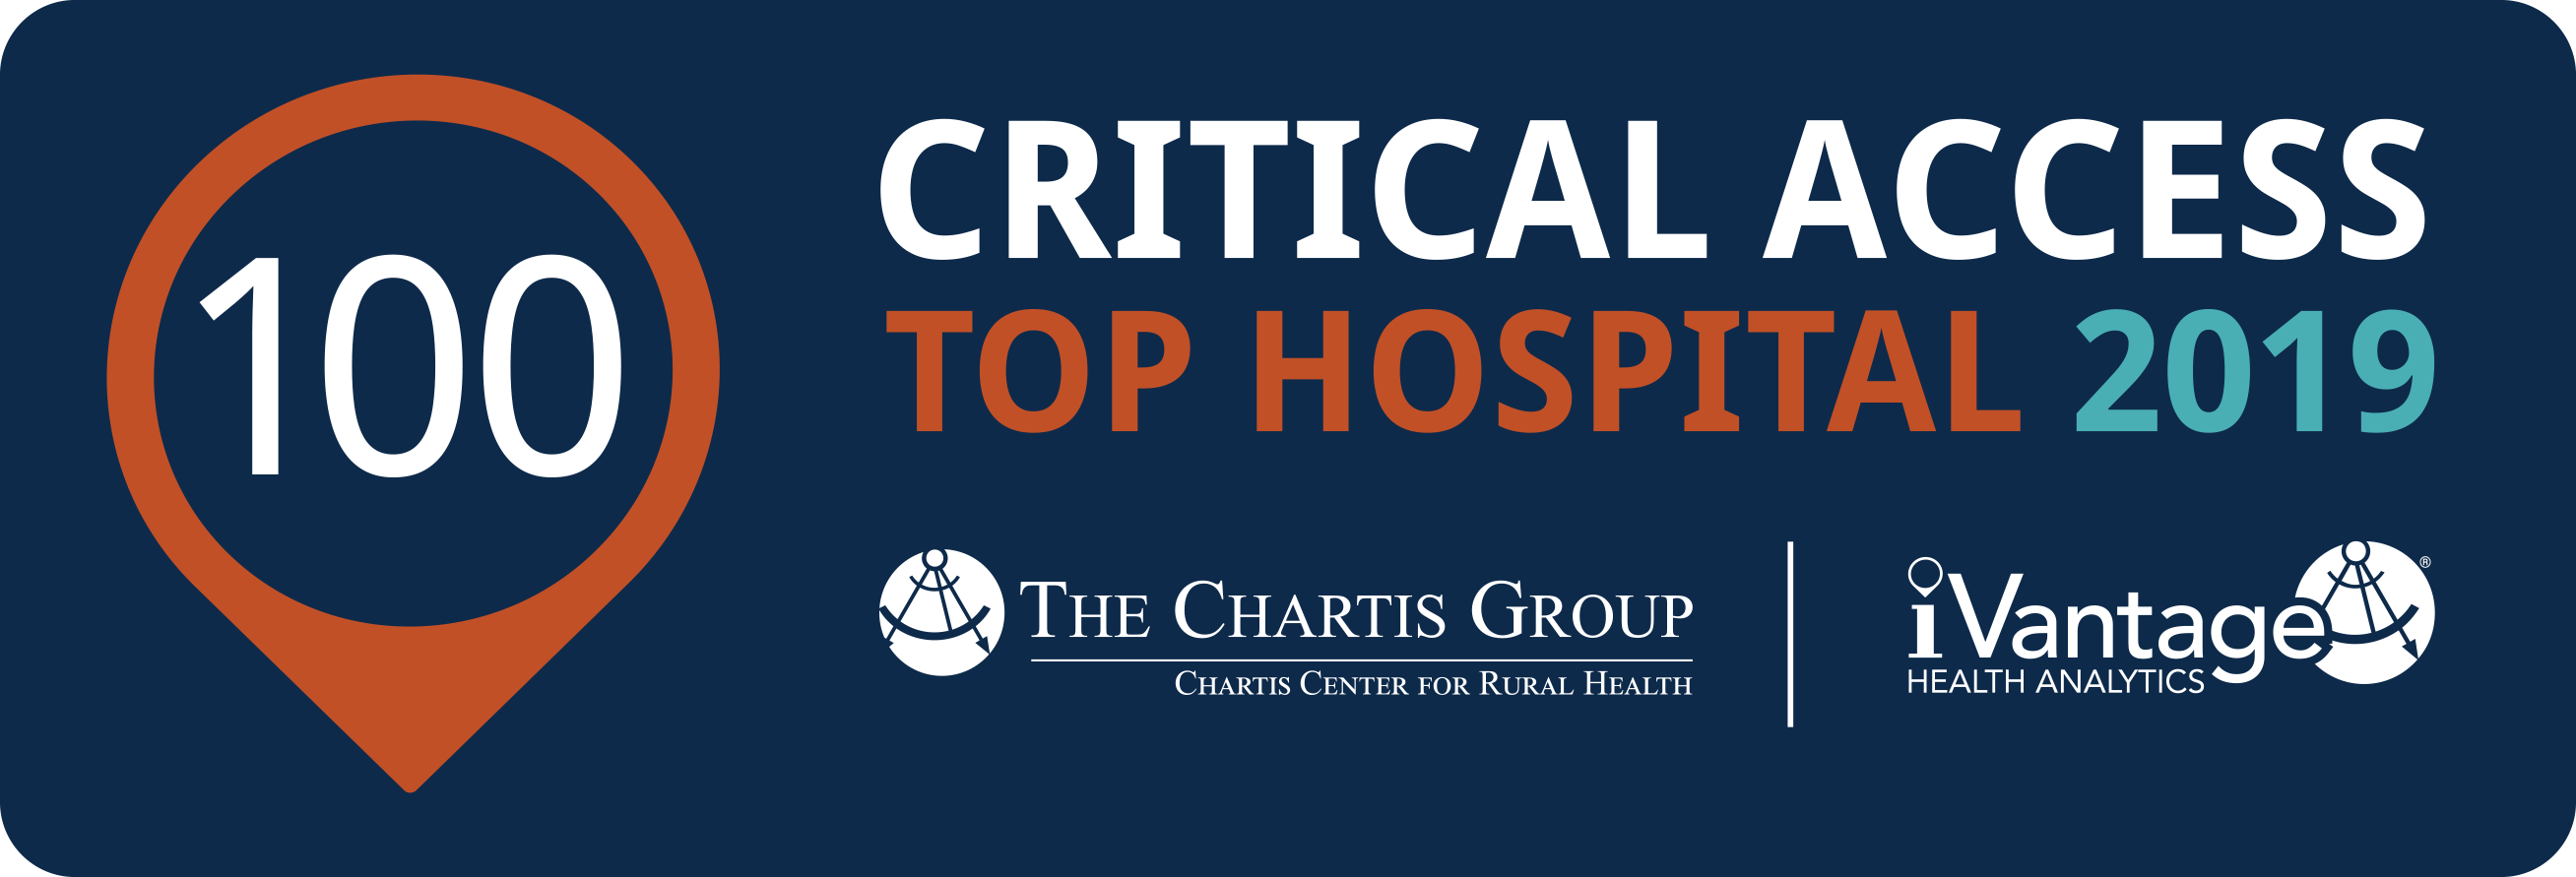 JRMC was named a Top 100 Critical Access Hospital for 2019 by The Chartis Group and iVantage. JRMC has received this distinction since 2014.